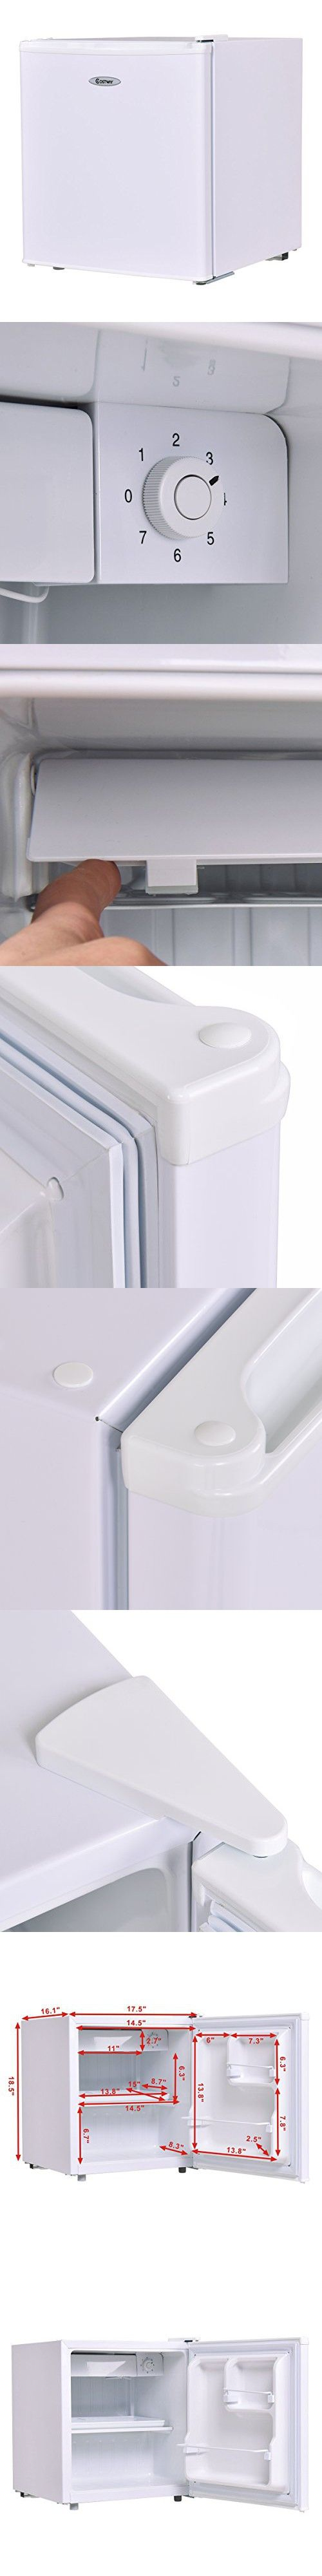 stainless general steel refrigerator product prod energy drawer double single electric residential freezer door star